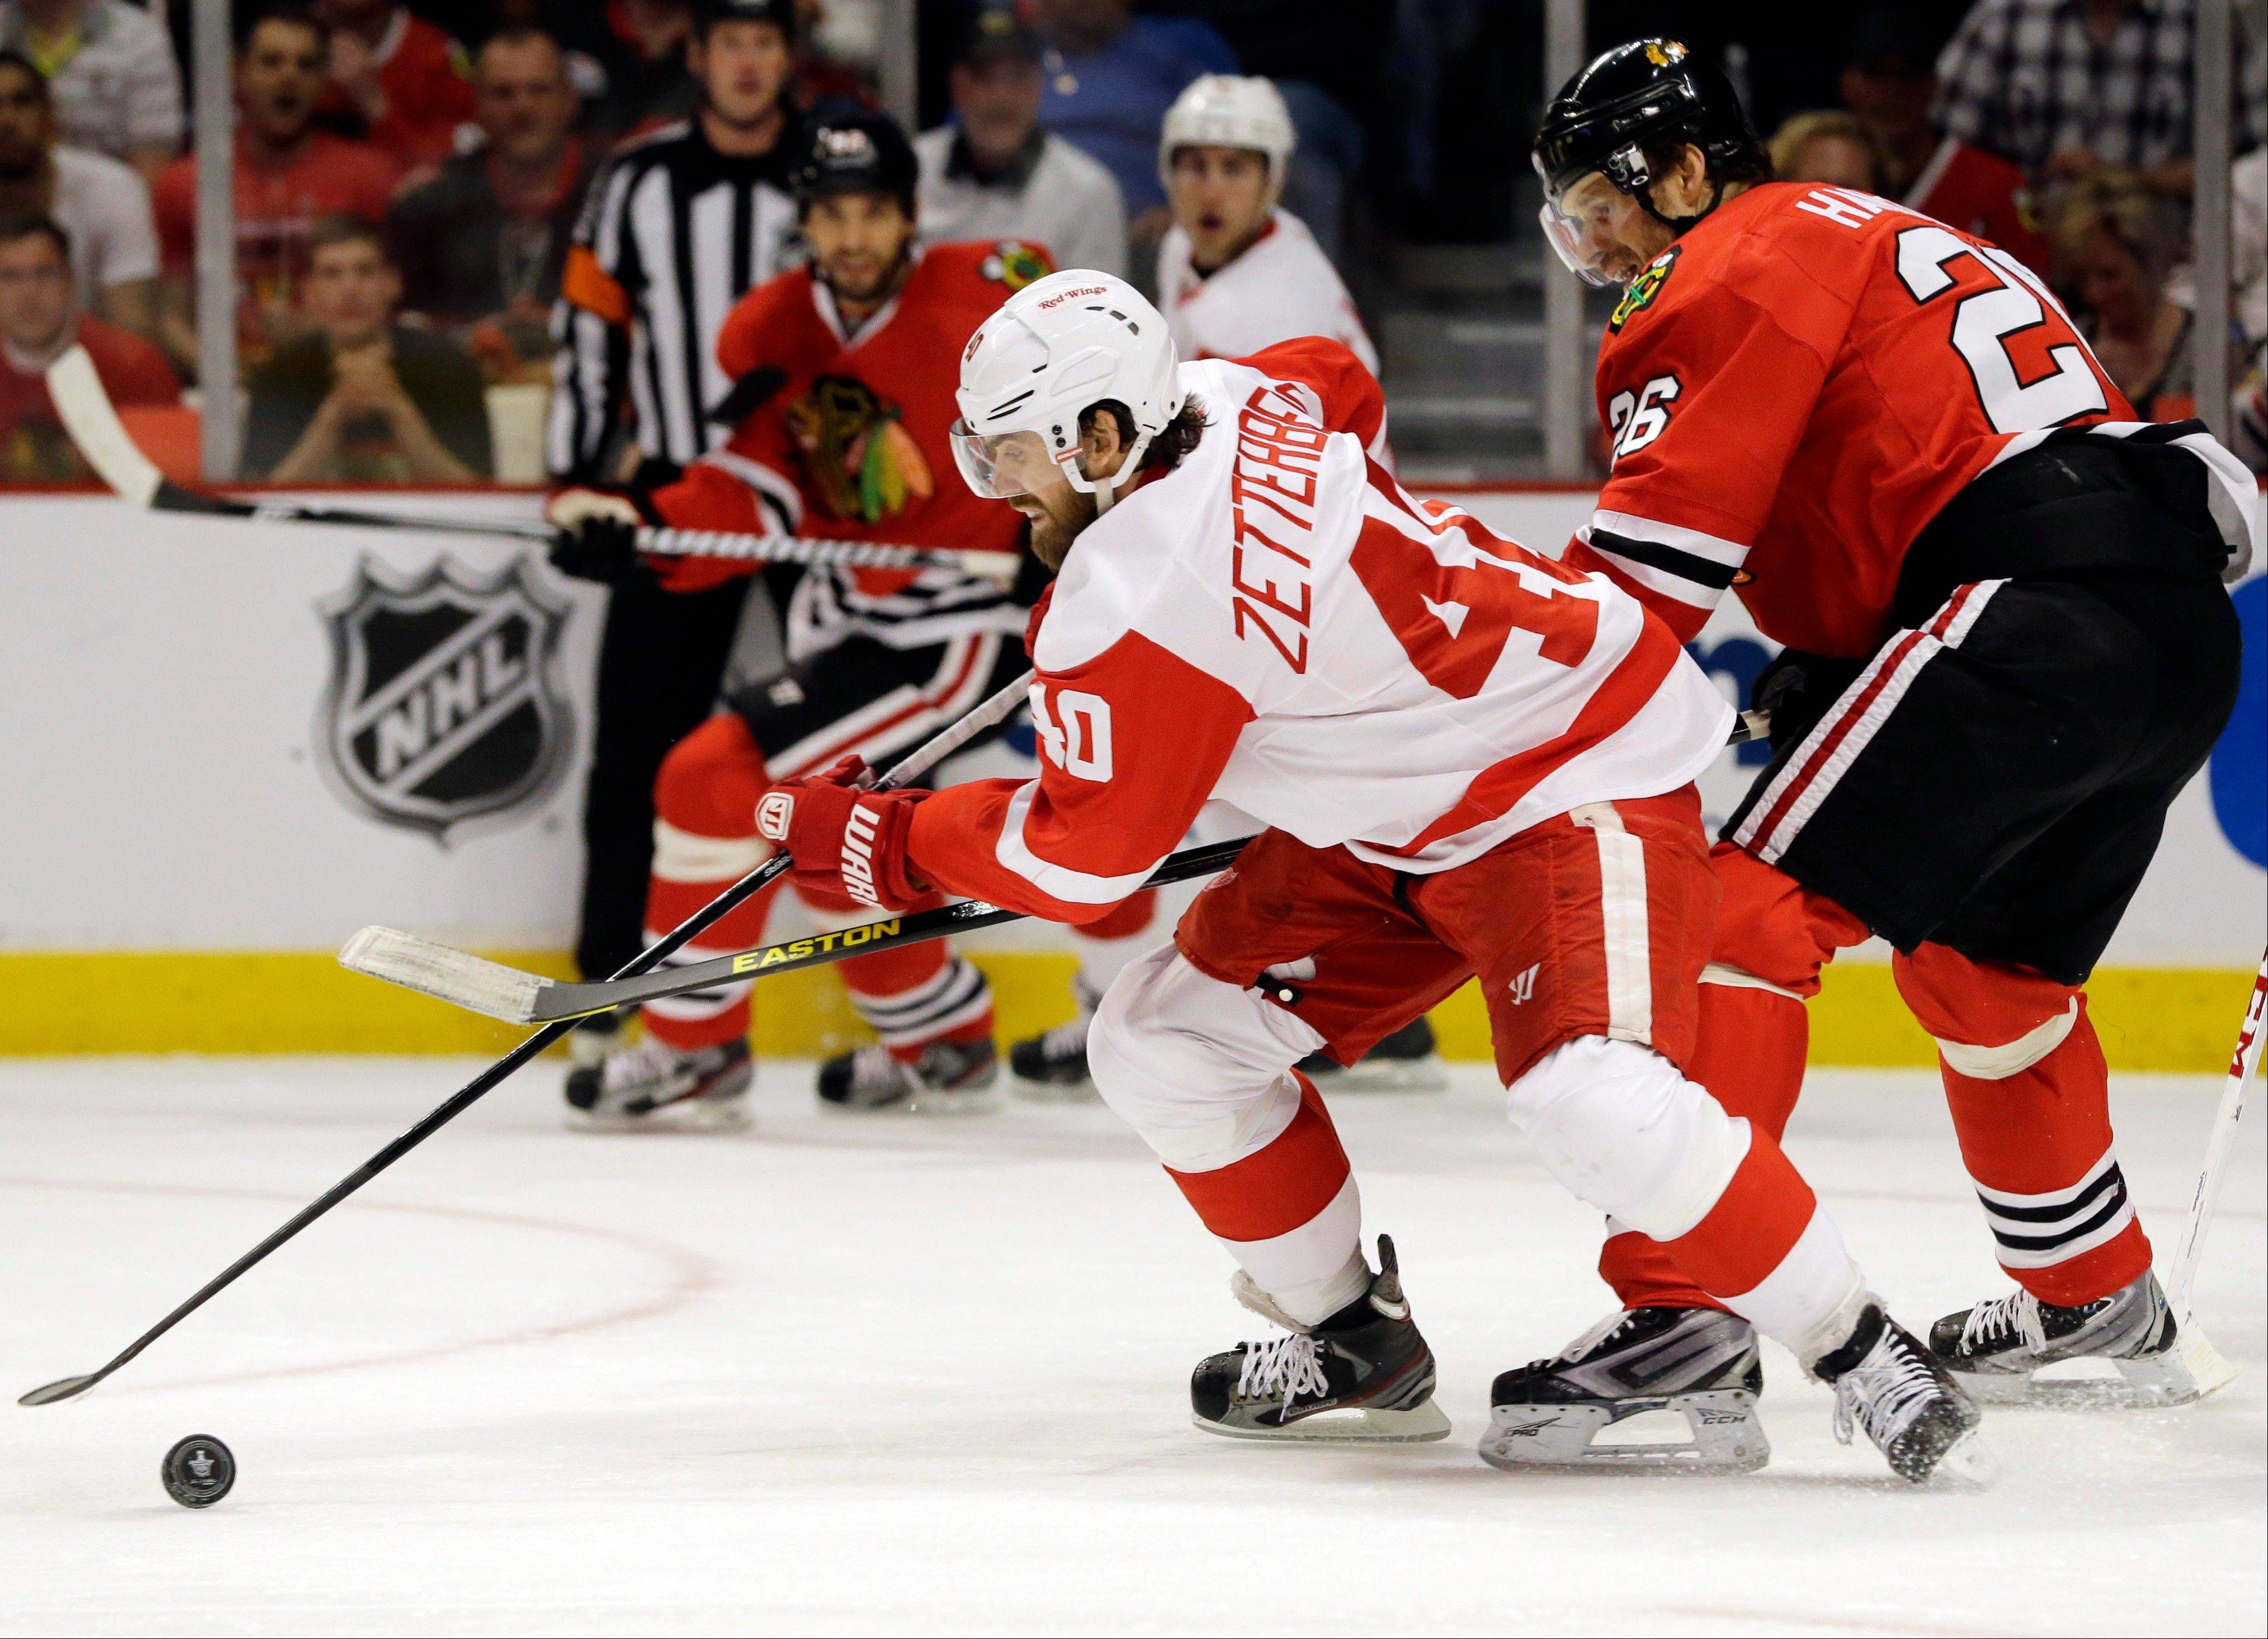 Detroit Red Wings' Henrik Zetterberg (40) controls the puck against Chicago Blackhawks' Michal Handzus (26) during the first period of Game 1 of an NHL hockey playoffs Western Conference semifinal in Chicago, Wednesday, May 15, 2013.